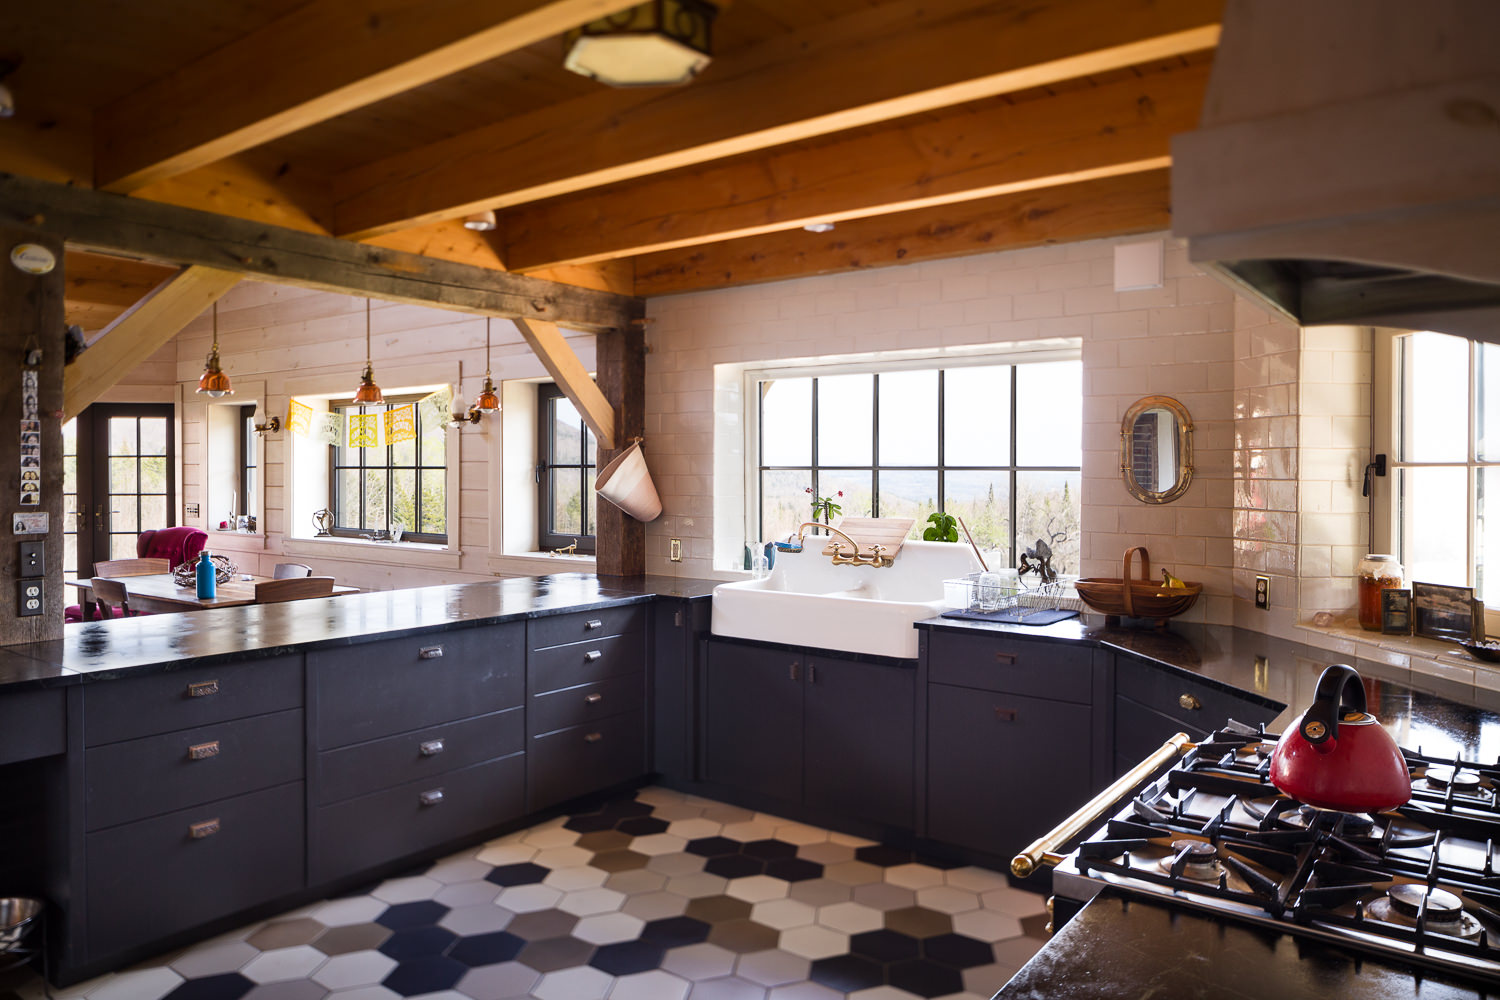 Interior architecture photo of kitchen in efficient farmhouse built by New Frameworks Natural Building in Middlesex Vermont